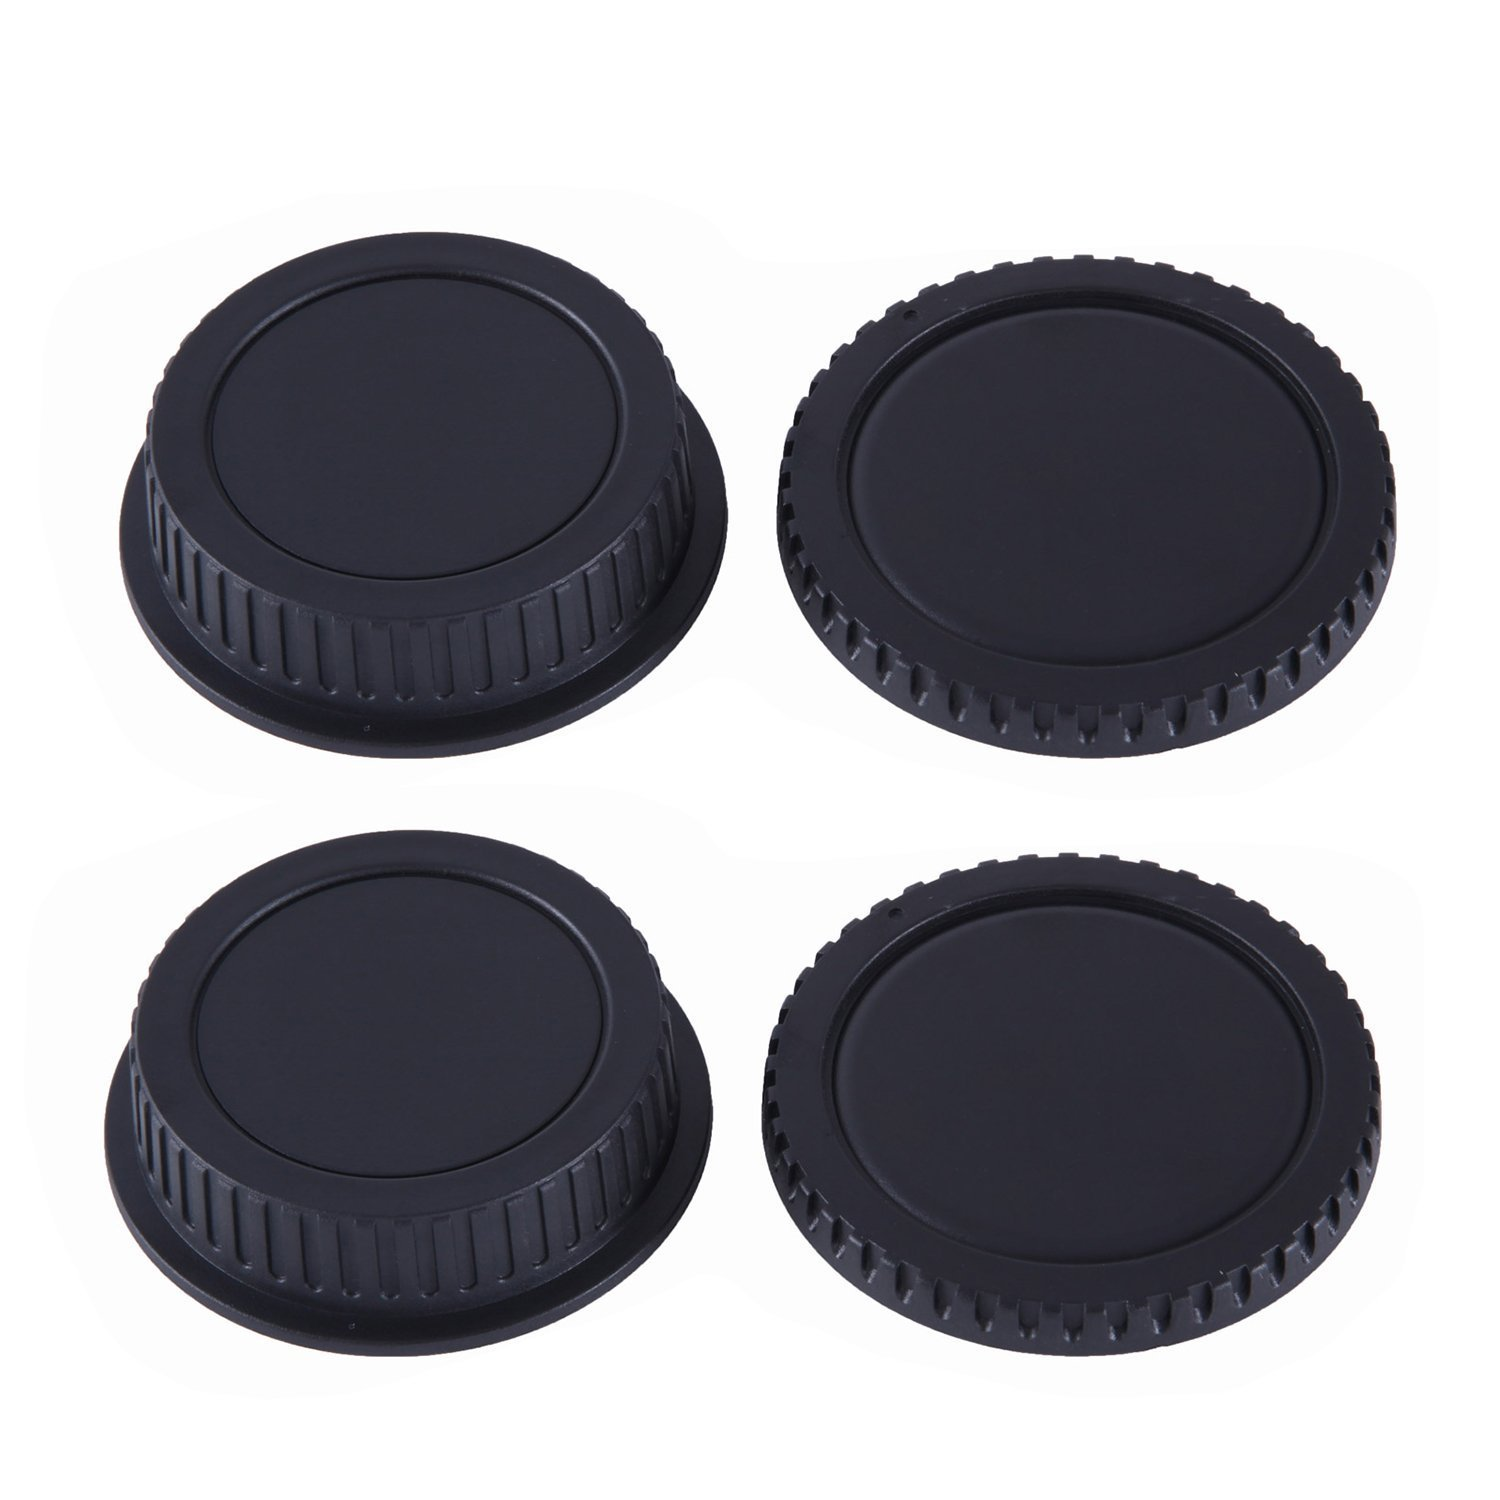 2 PACK - Movo Lens Mount Cap and Body Cap for Canon EOS DSLR Camera (4 Caps)